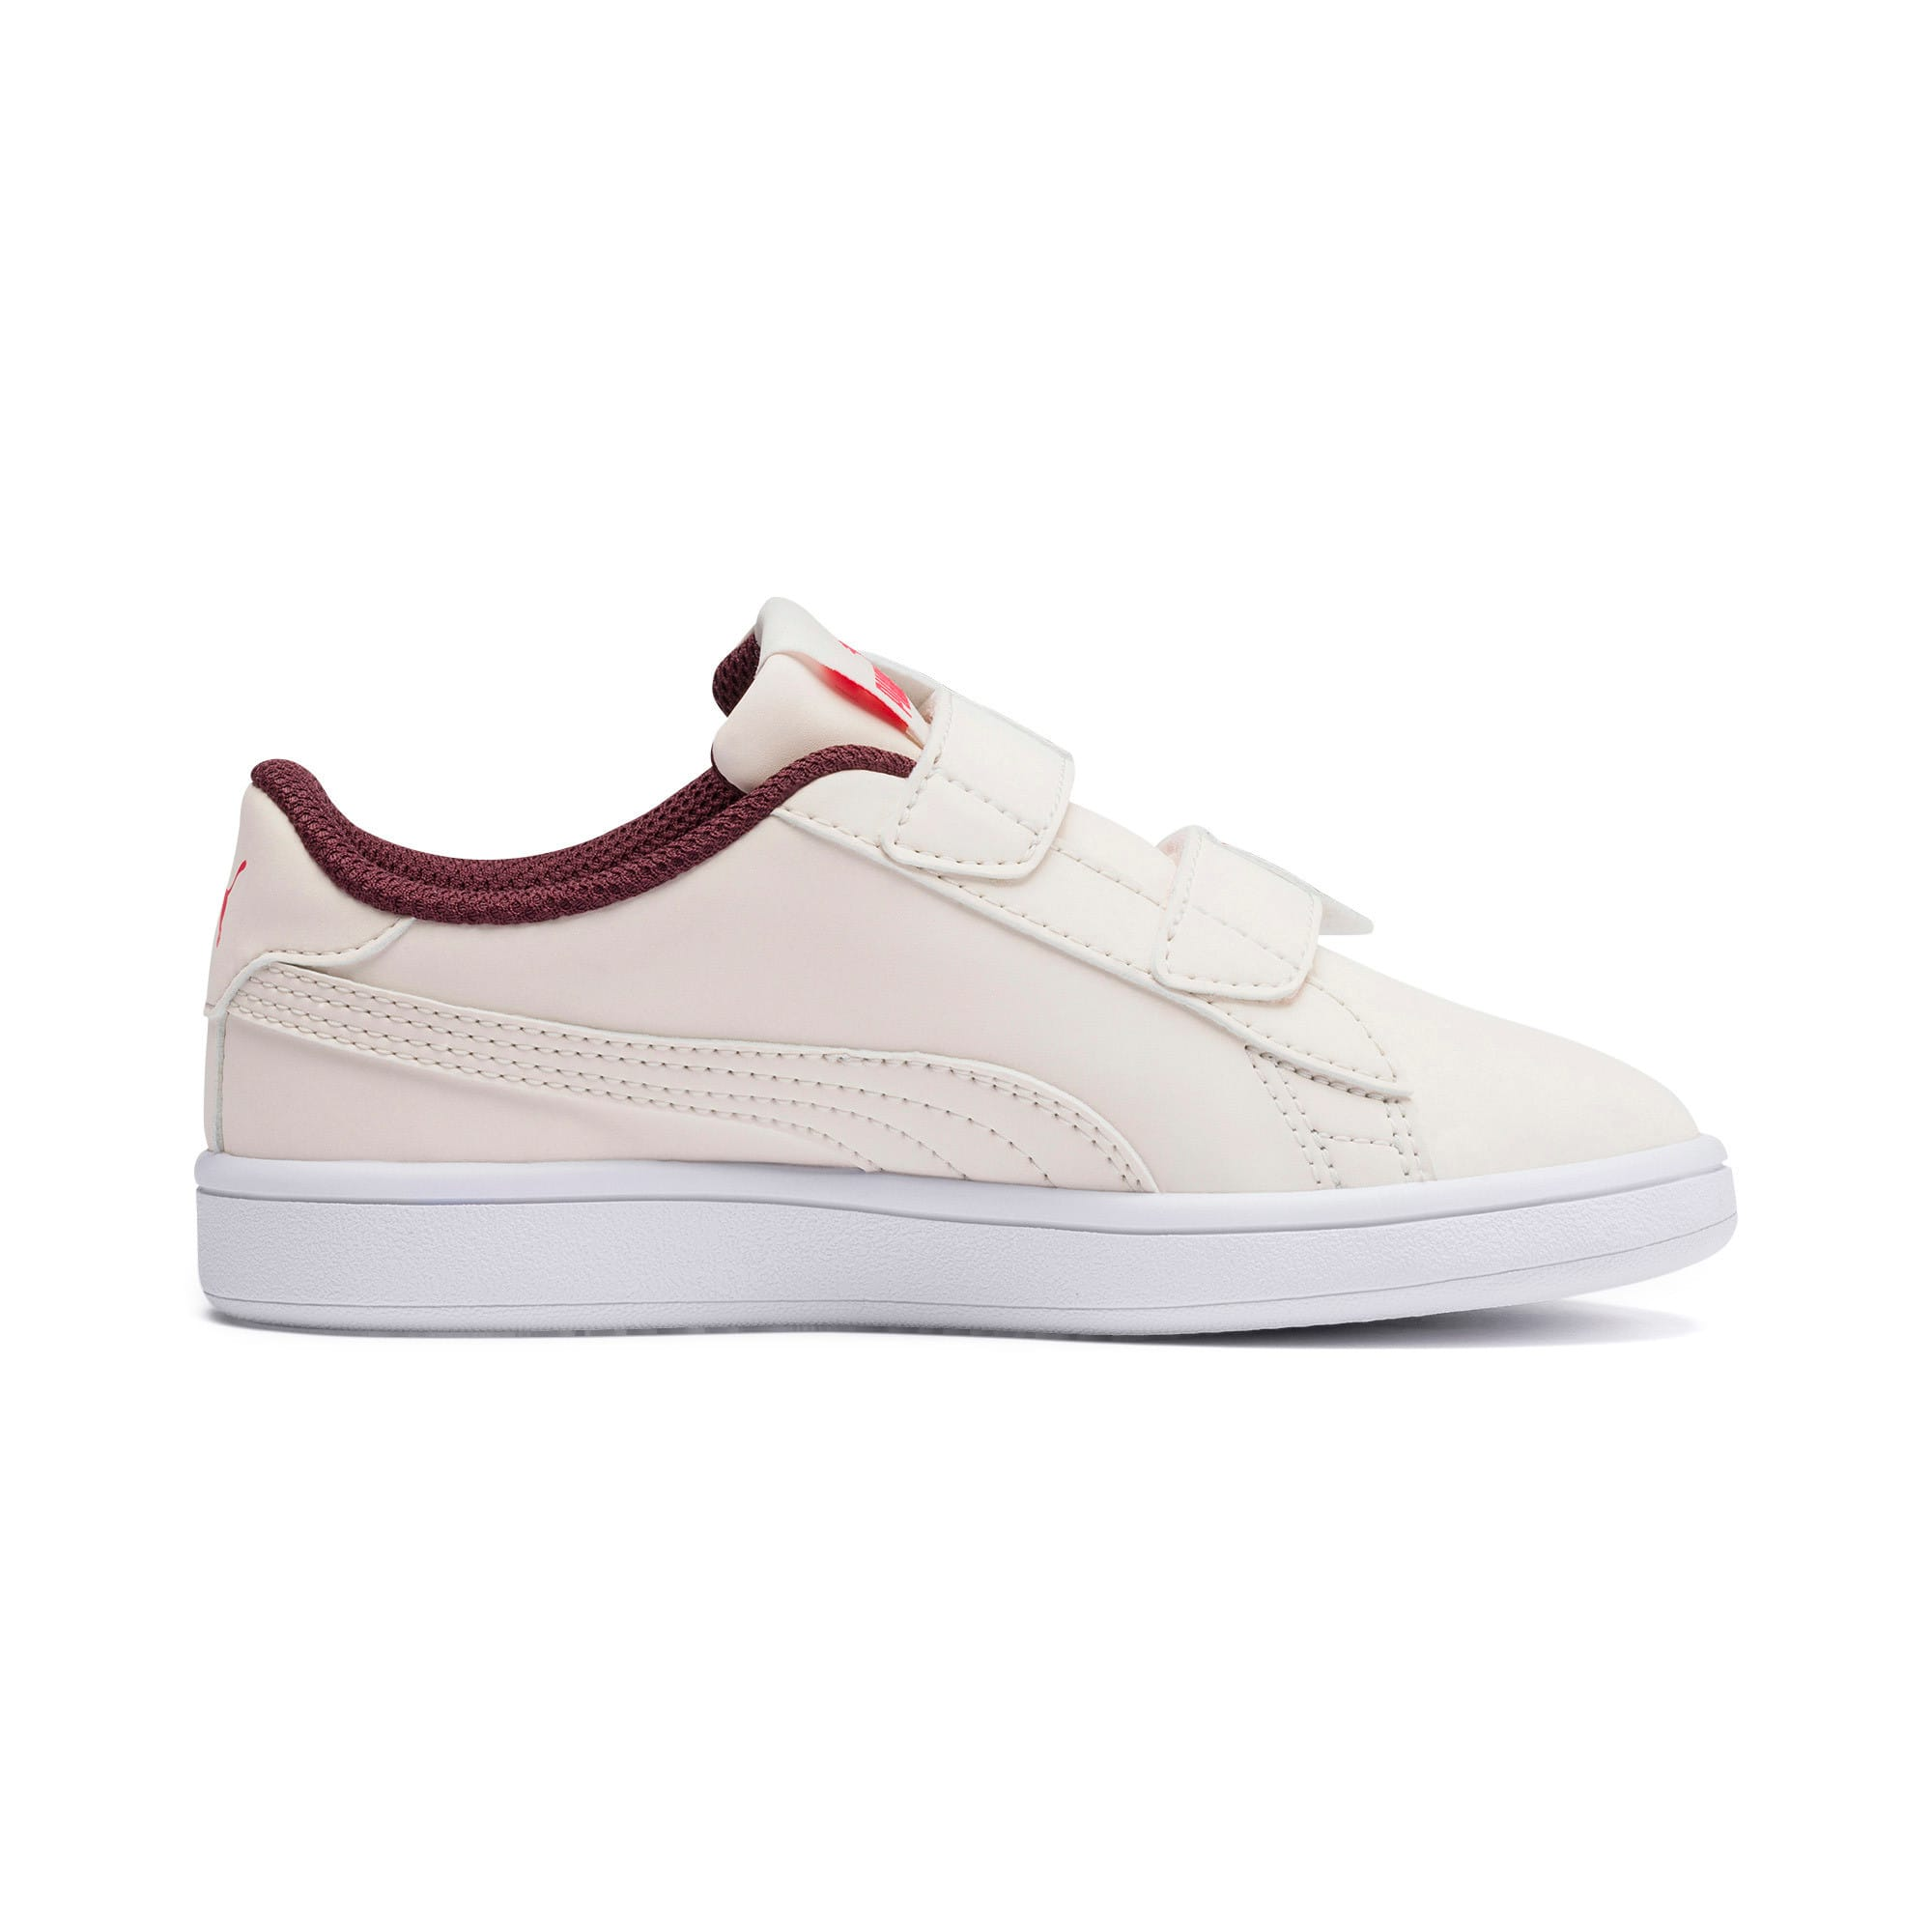 Thumbnail 5 of PUMA Smash v2 Butterfly Kid Girls' Trainers, Pastel Parchment-Vineyard, medium